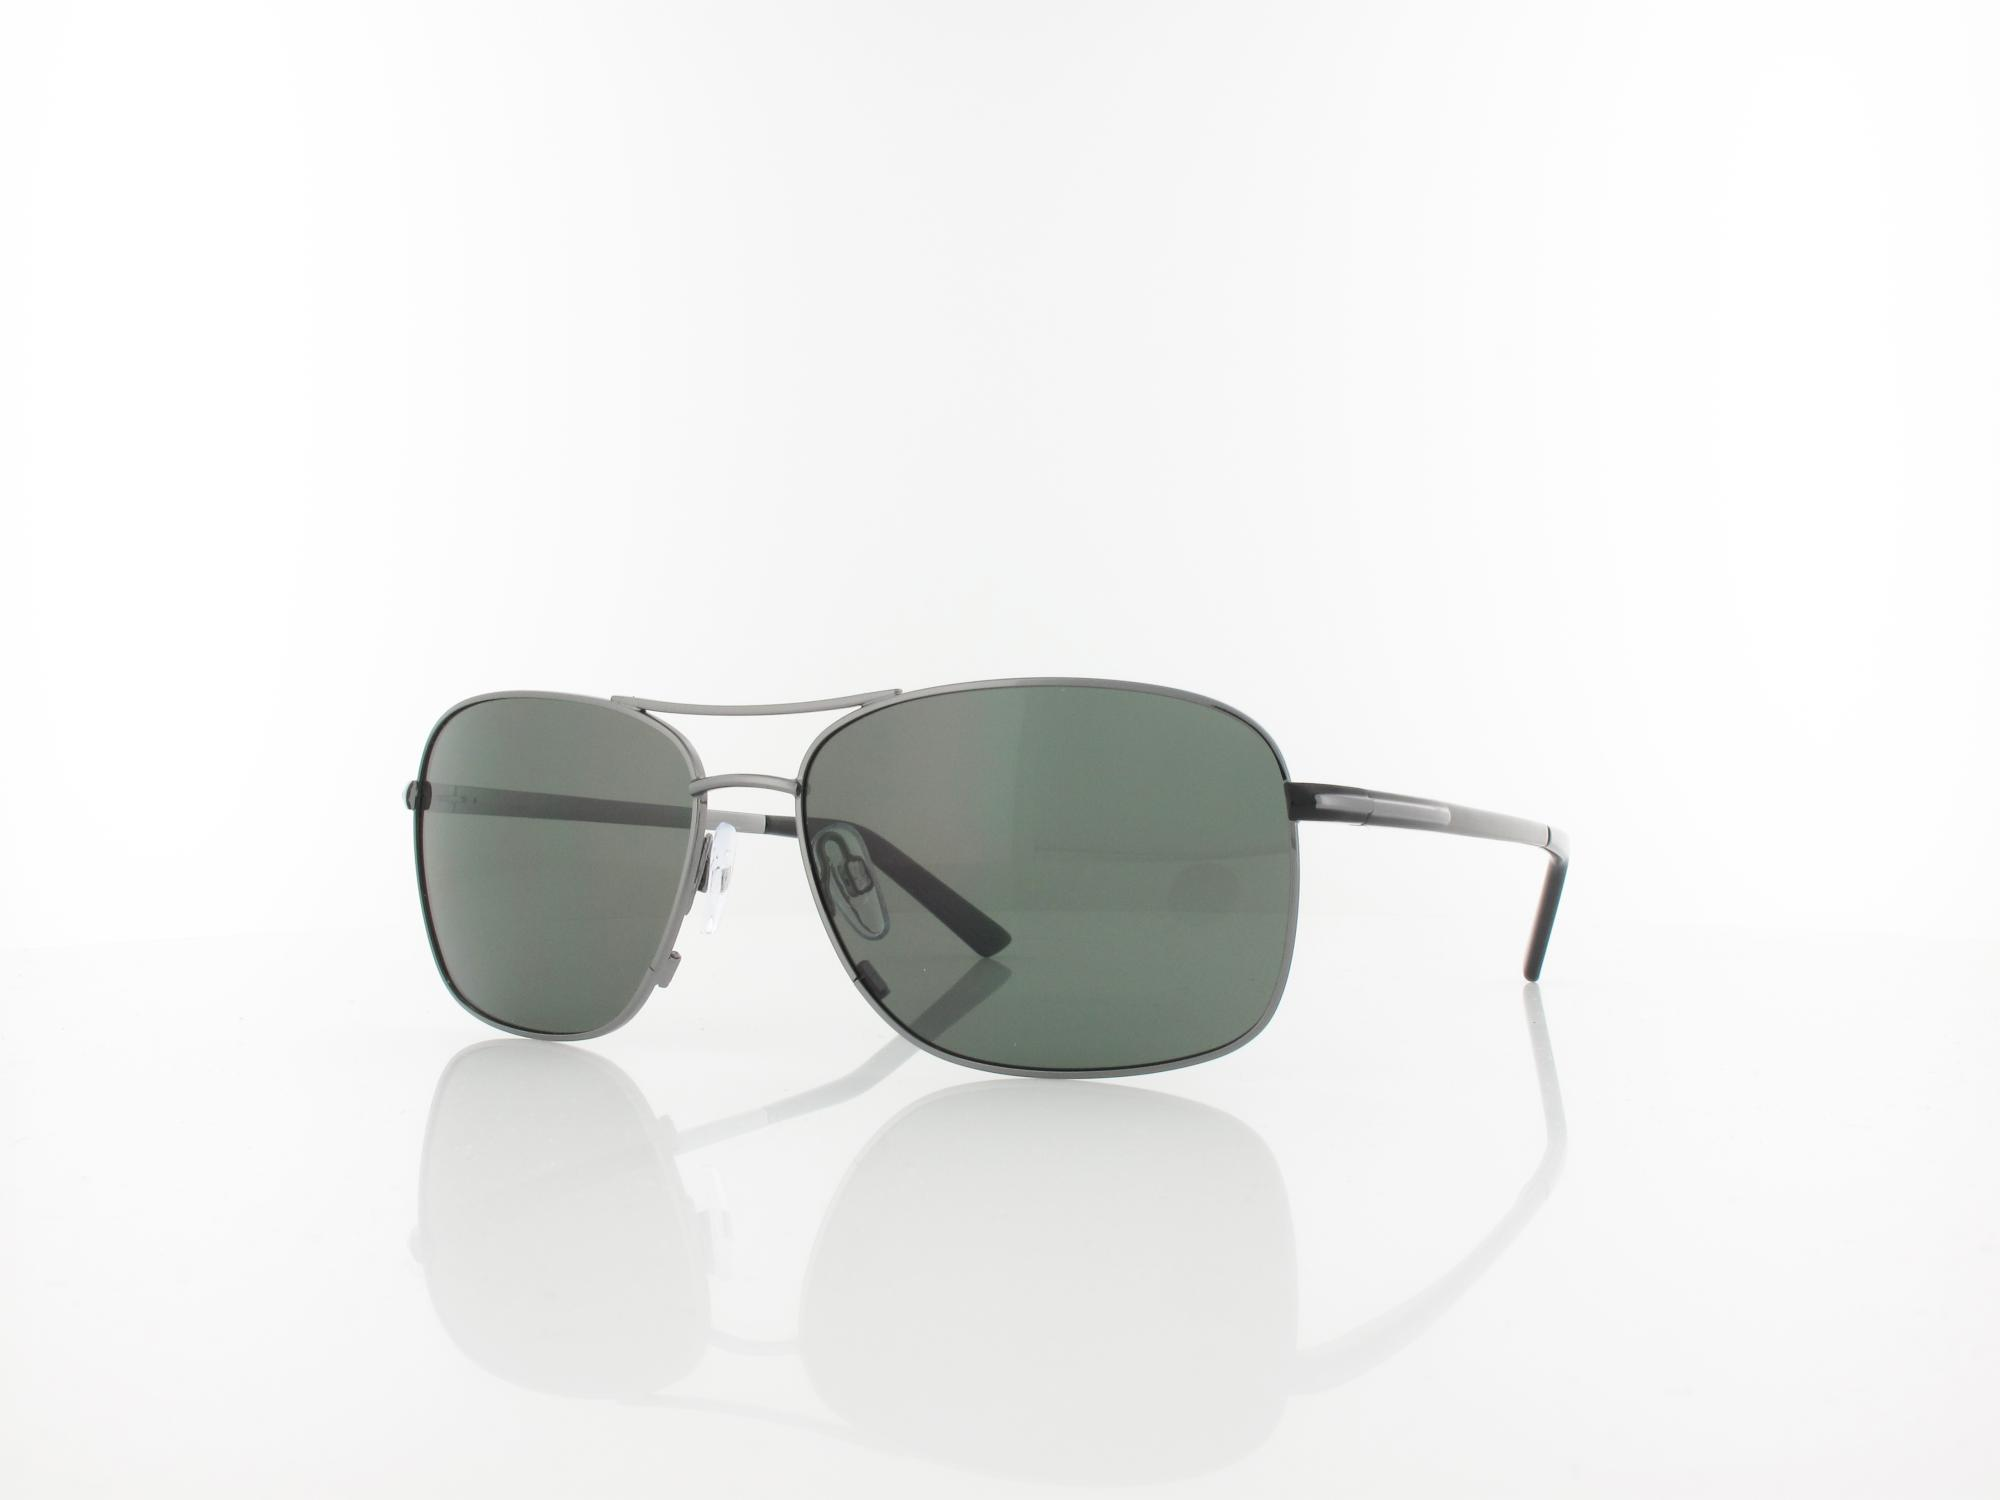 HIS polarized | HP64101-2 60 | dark gun / green polarized